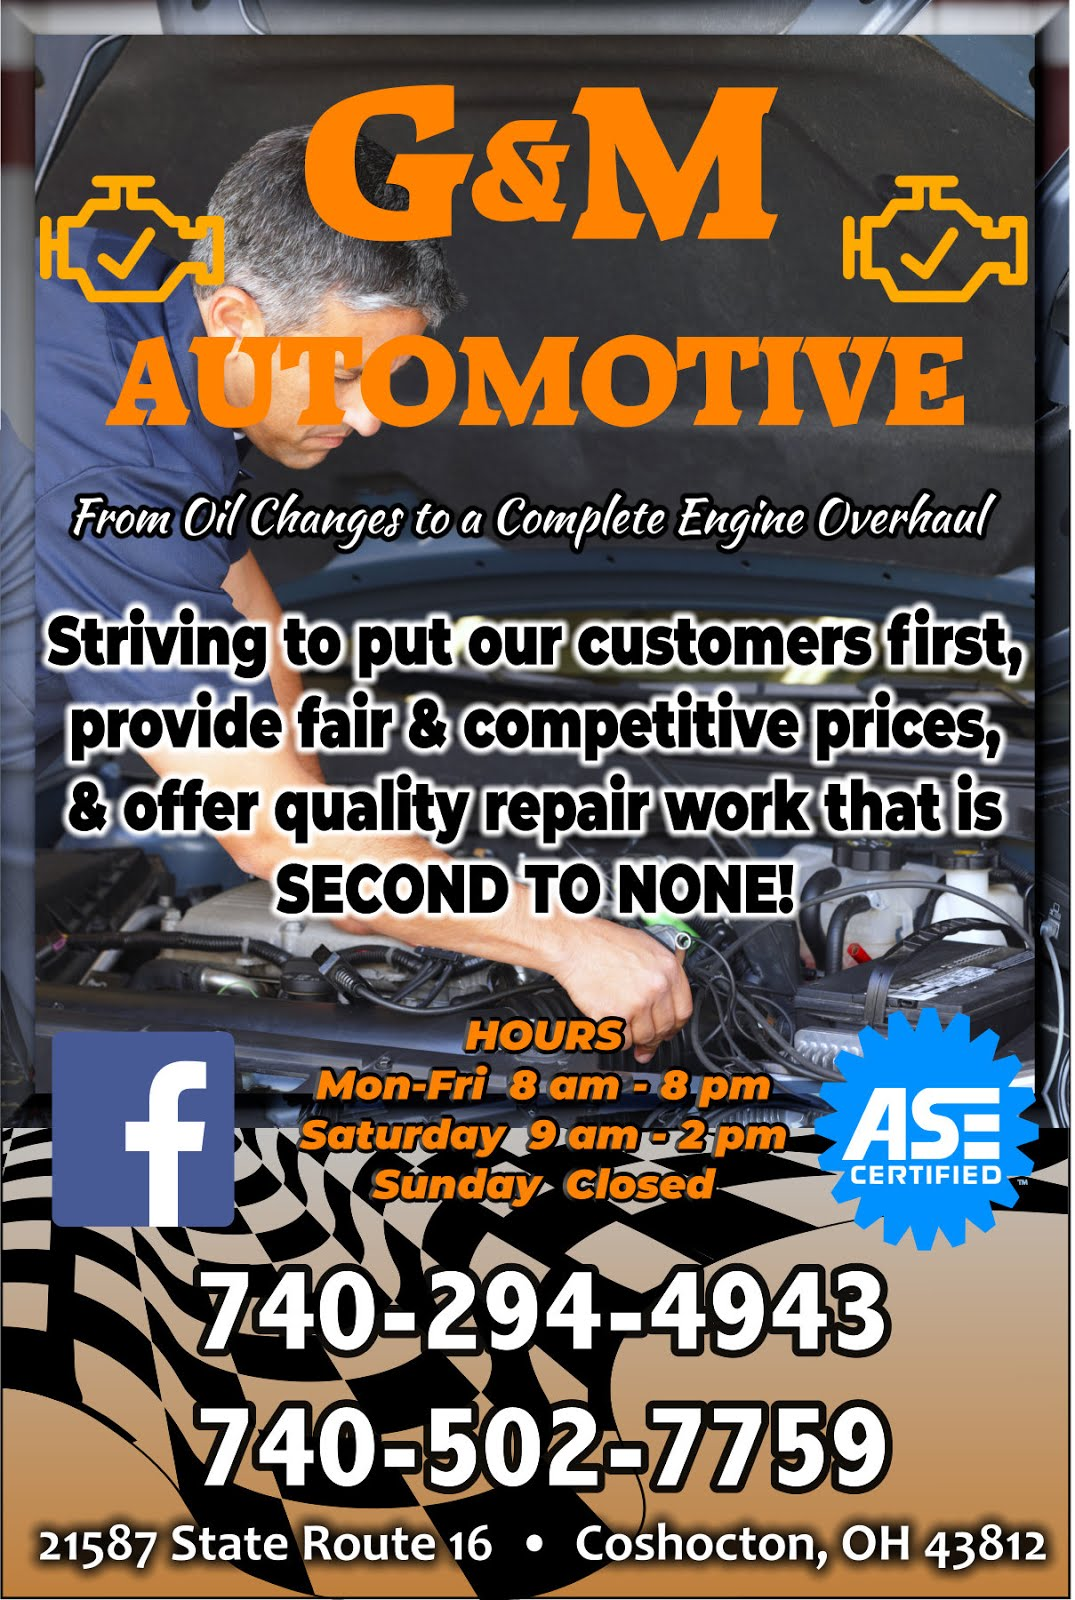 G&M Automotive